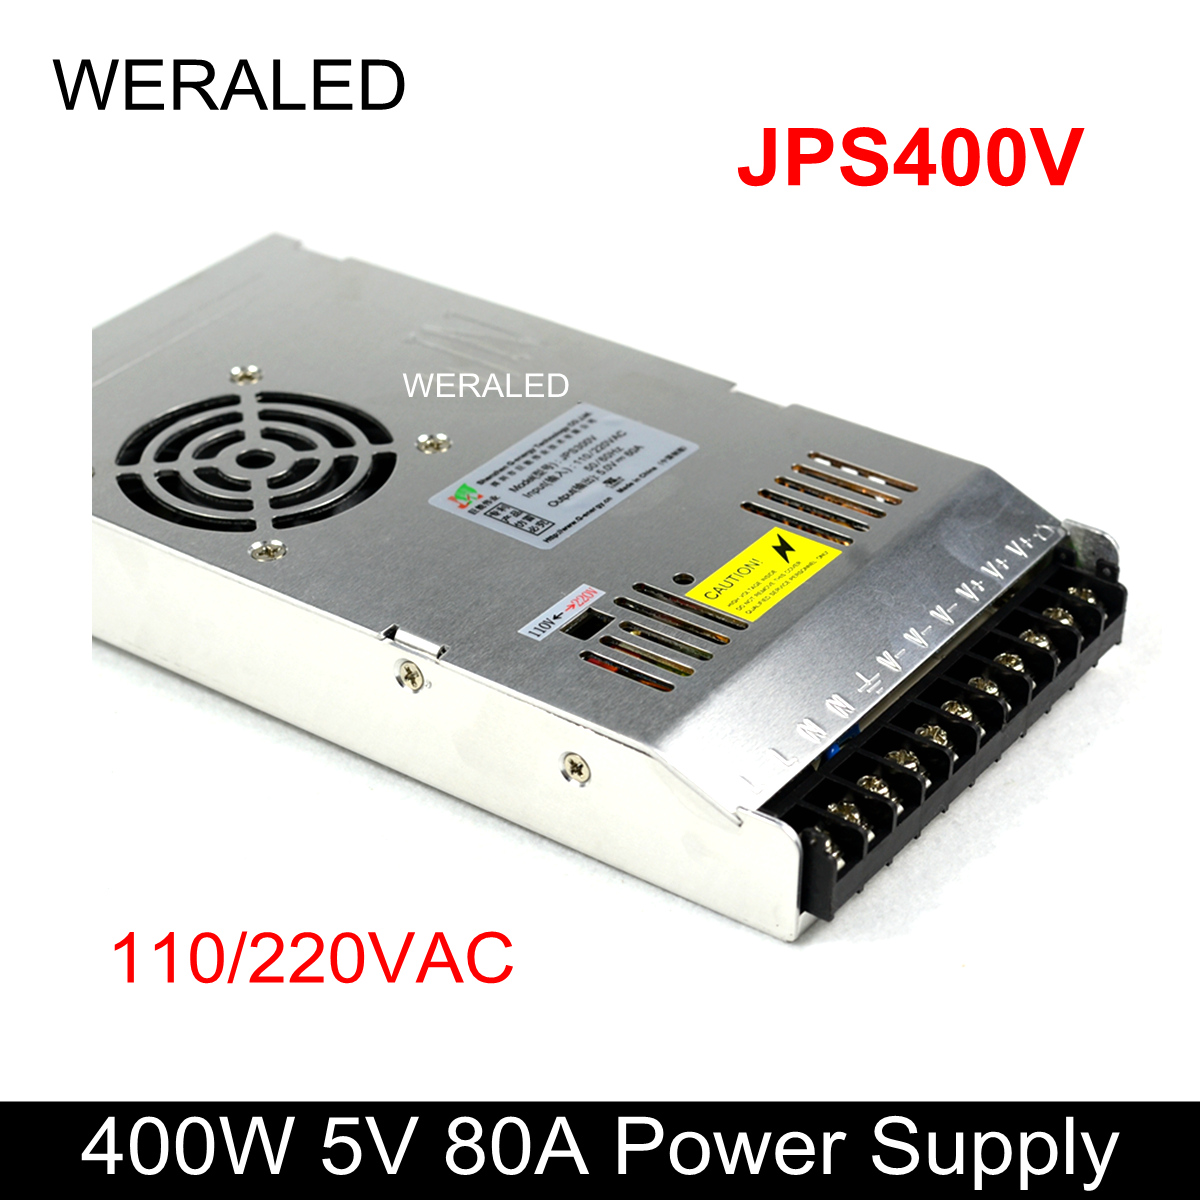 G-energy 5V 80A 400W LED Display Power Supply JPS400V ,Input 110/220VAC PSU Work for P10 P8 P6 P5 P4 P3 P2.5 P2 LED Module